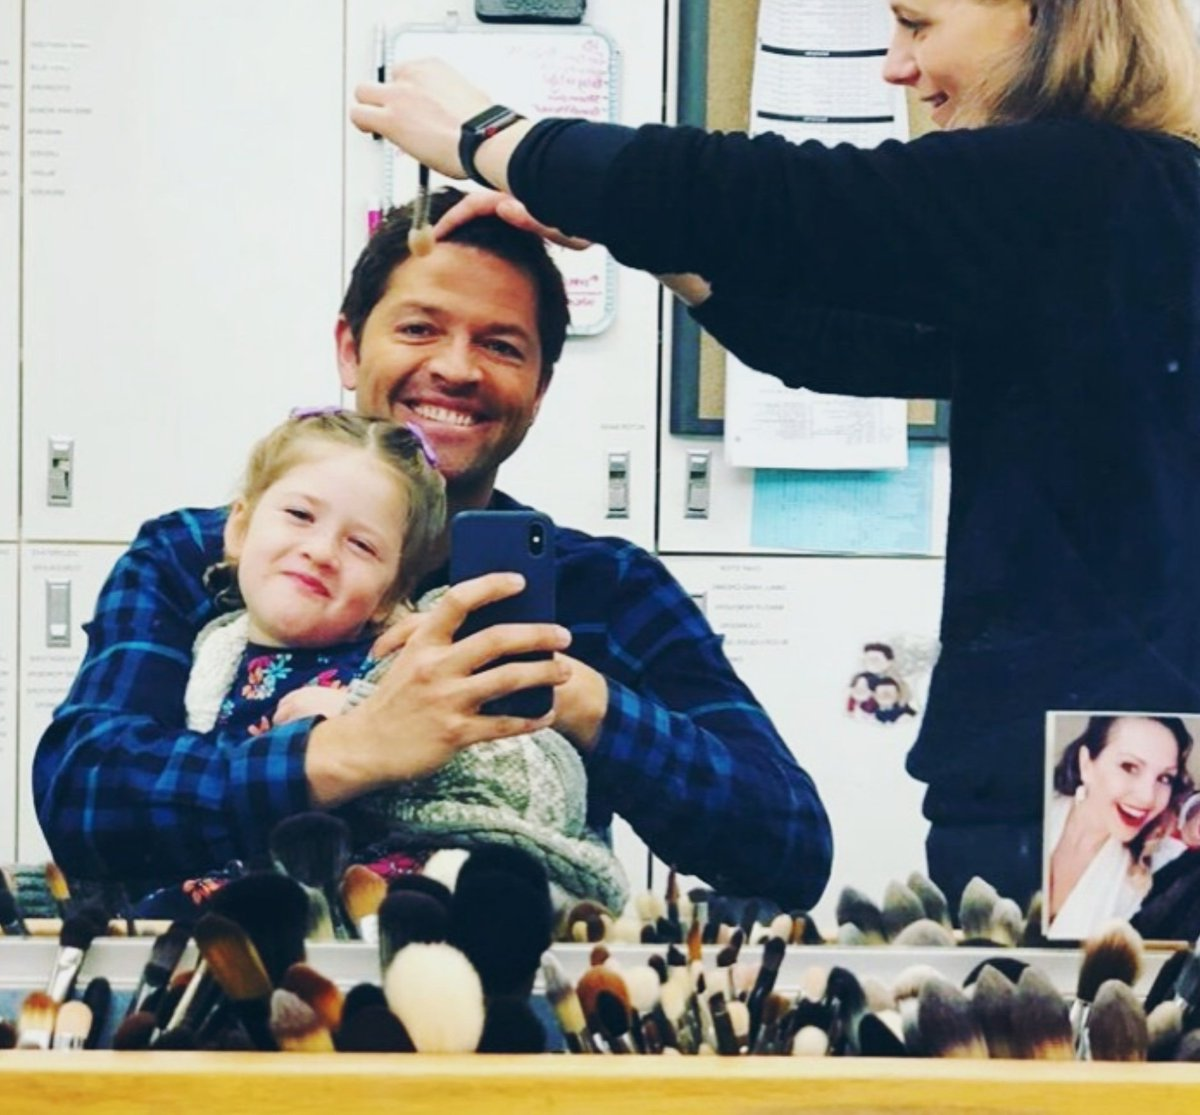 misha collins daily on Twitter